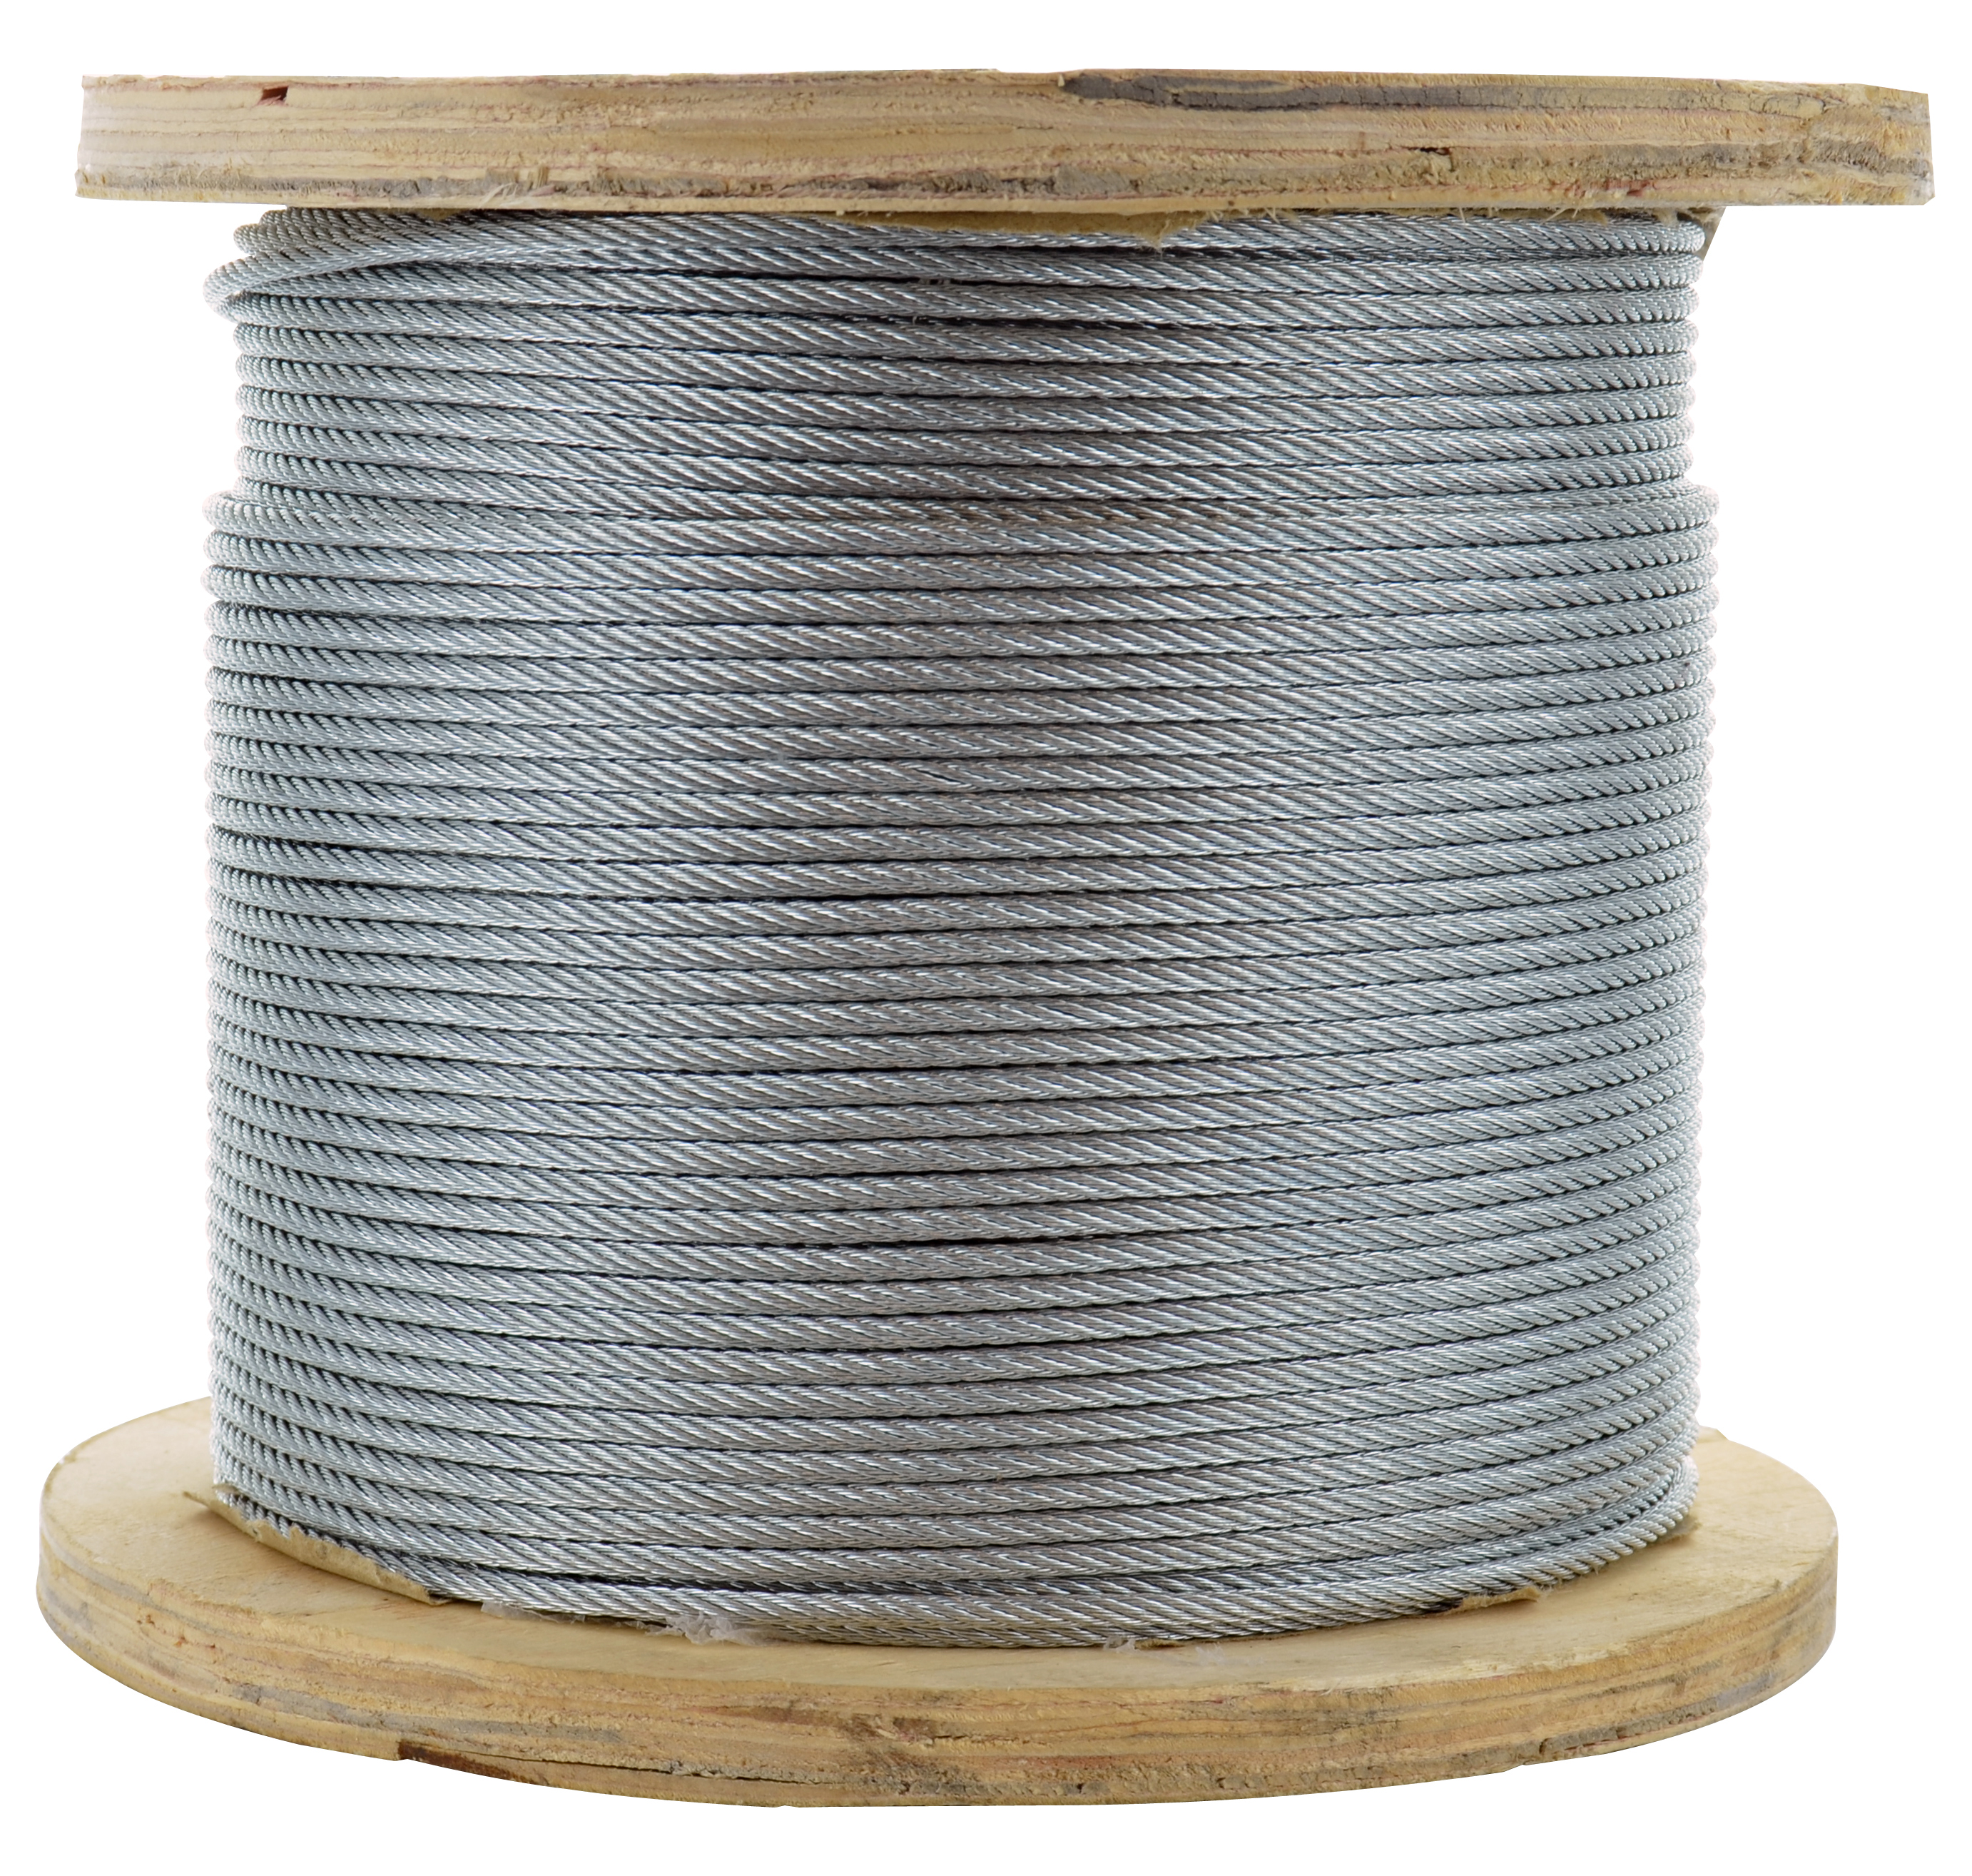 1/4 Inch x 250 ft 7X19 Strands 7000 Lb 304 Stainless Steel Uncoated Galvanized Aircraft Cable